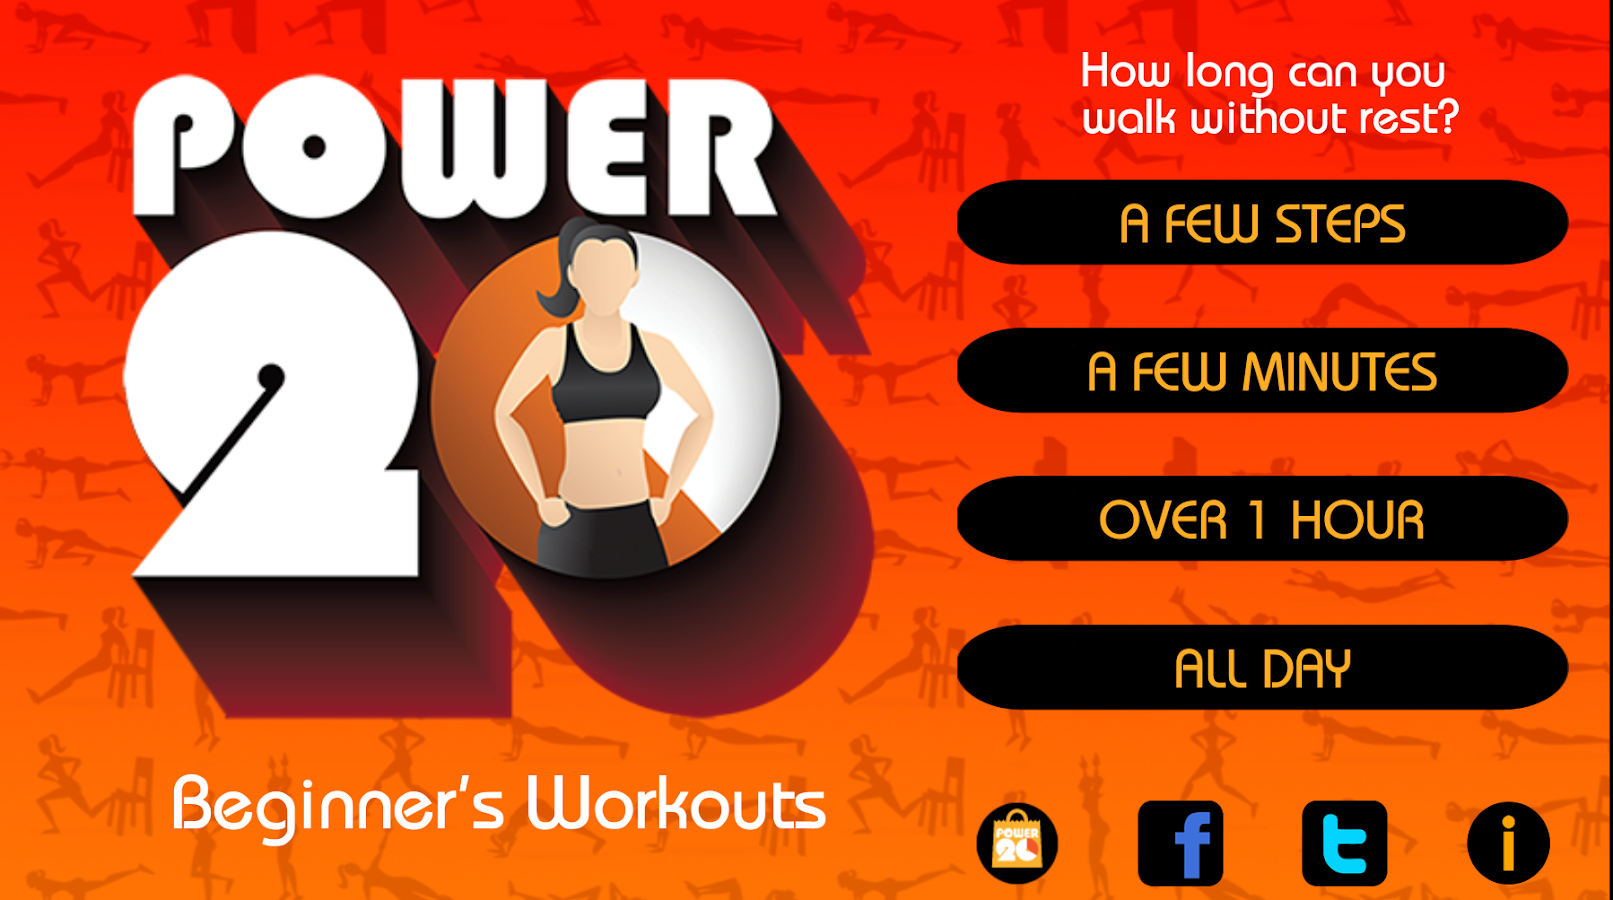 20 Minute Beginners Workout Screenshot 11